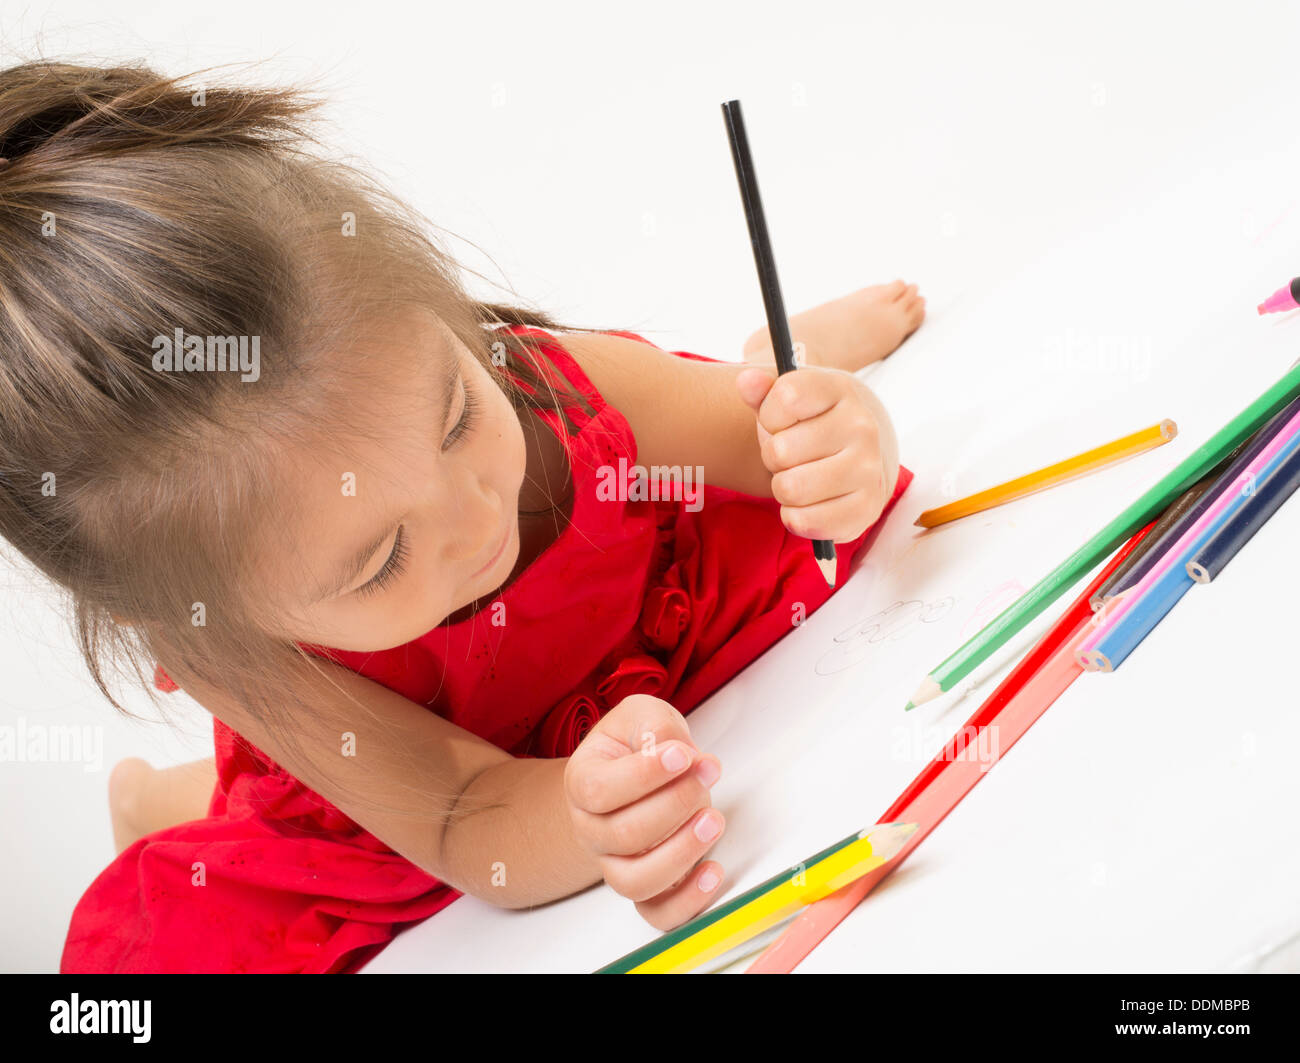 Young girl coloring with colored pencils - Stock Image